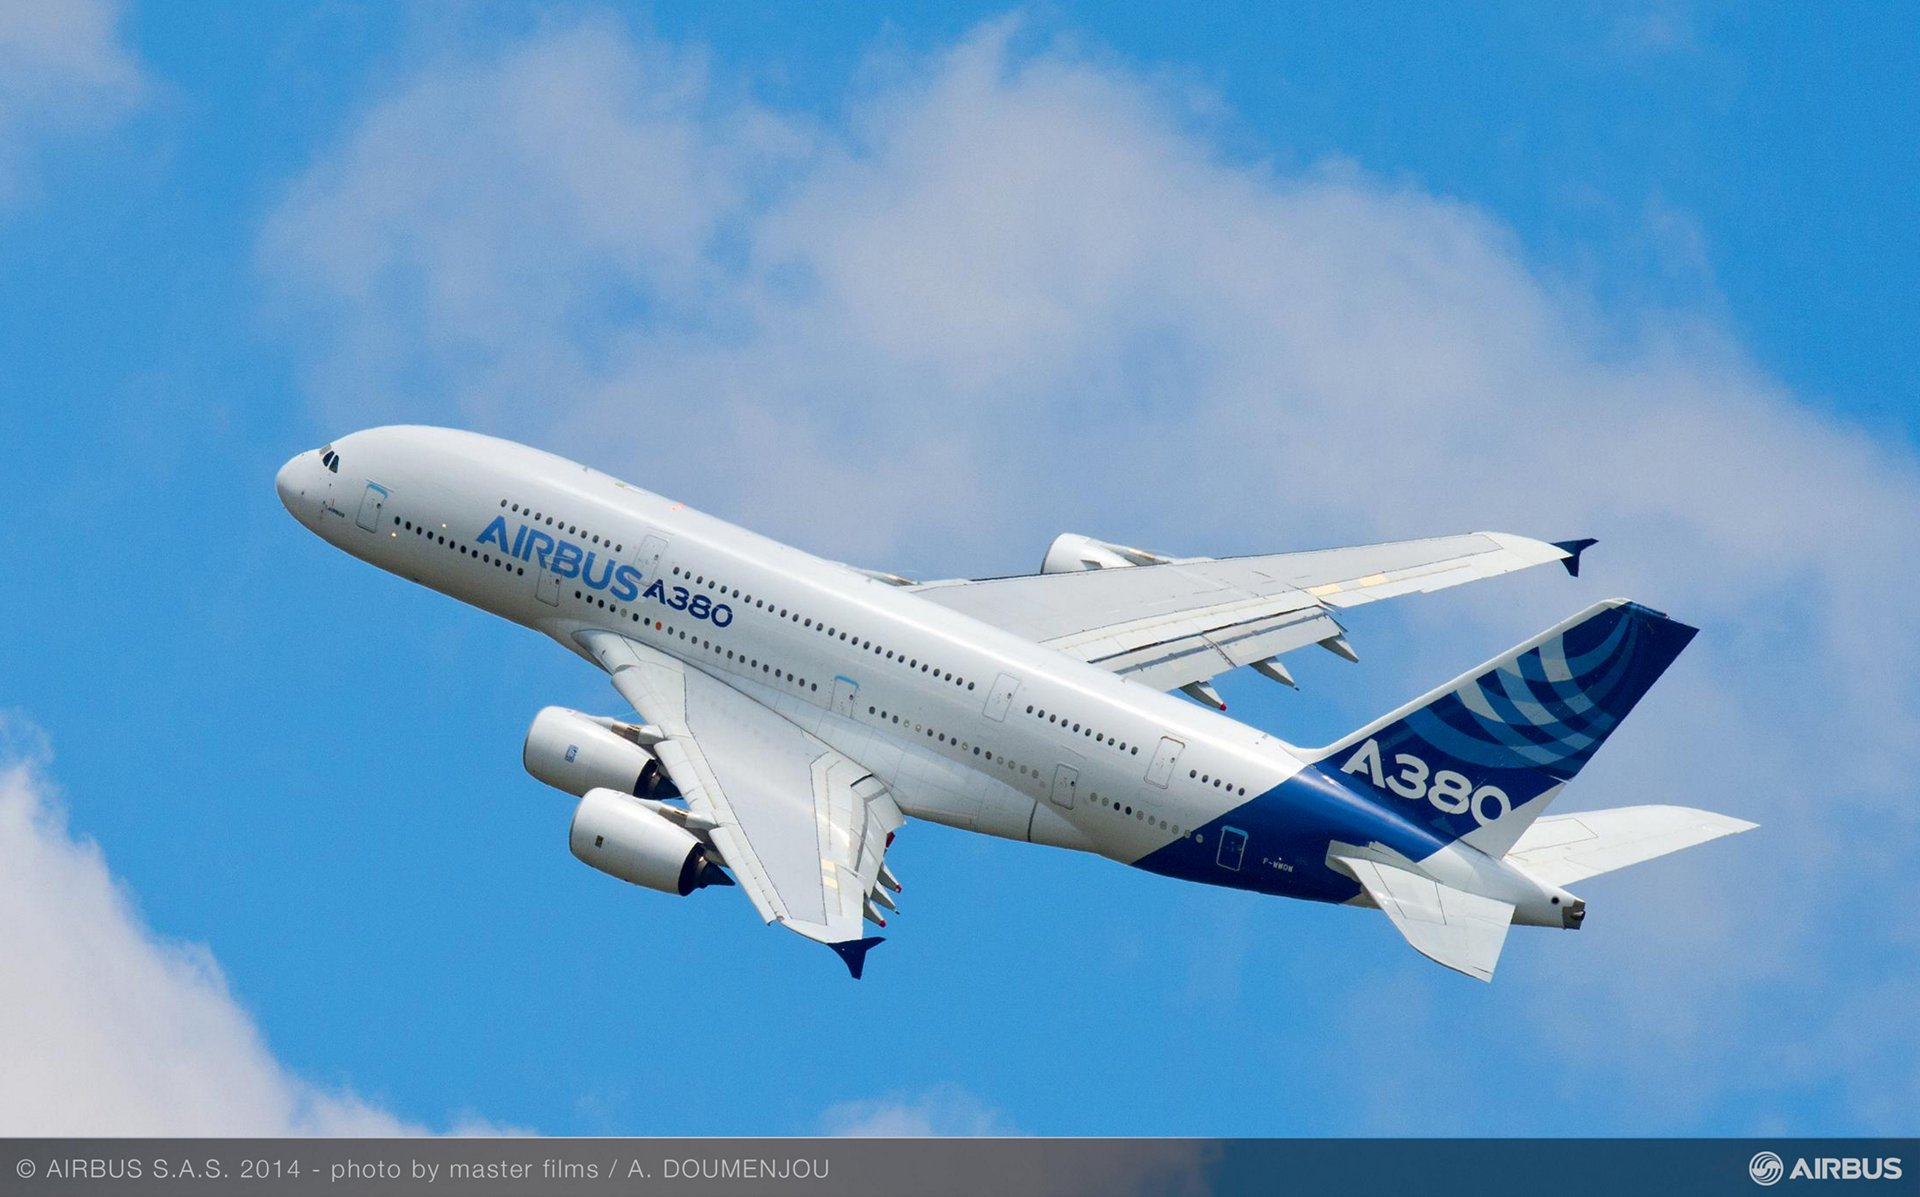 A380 take off airbus livery